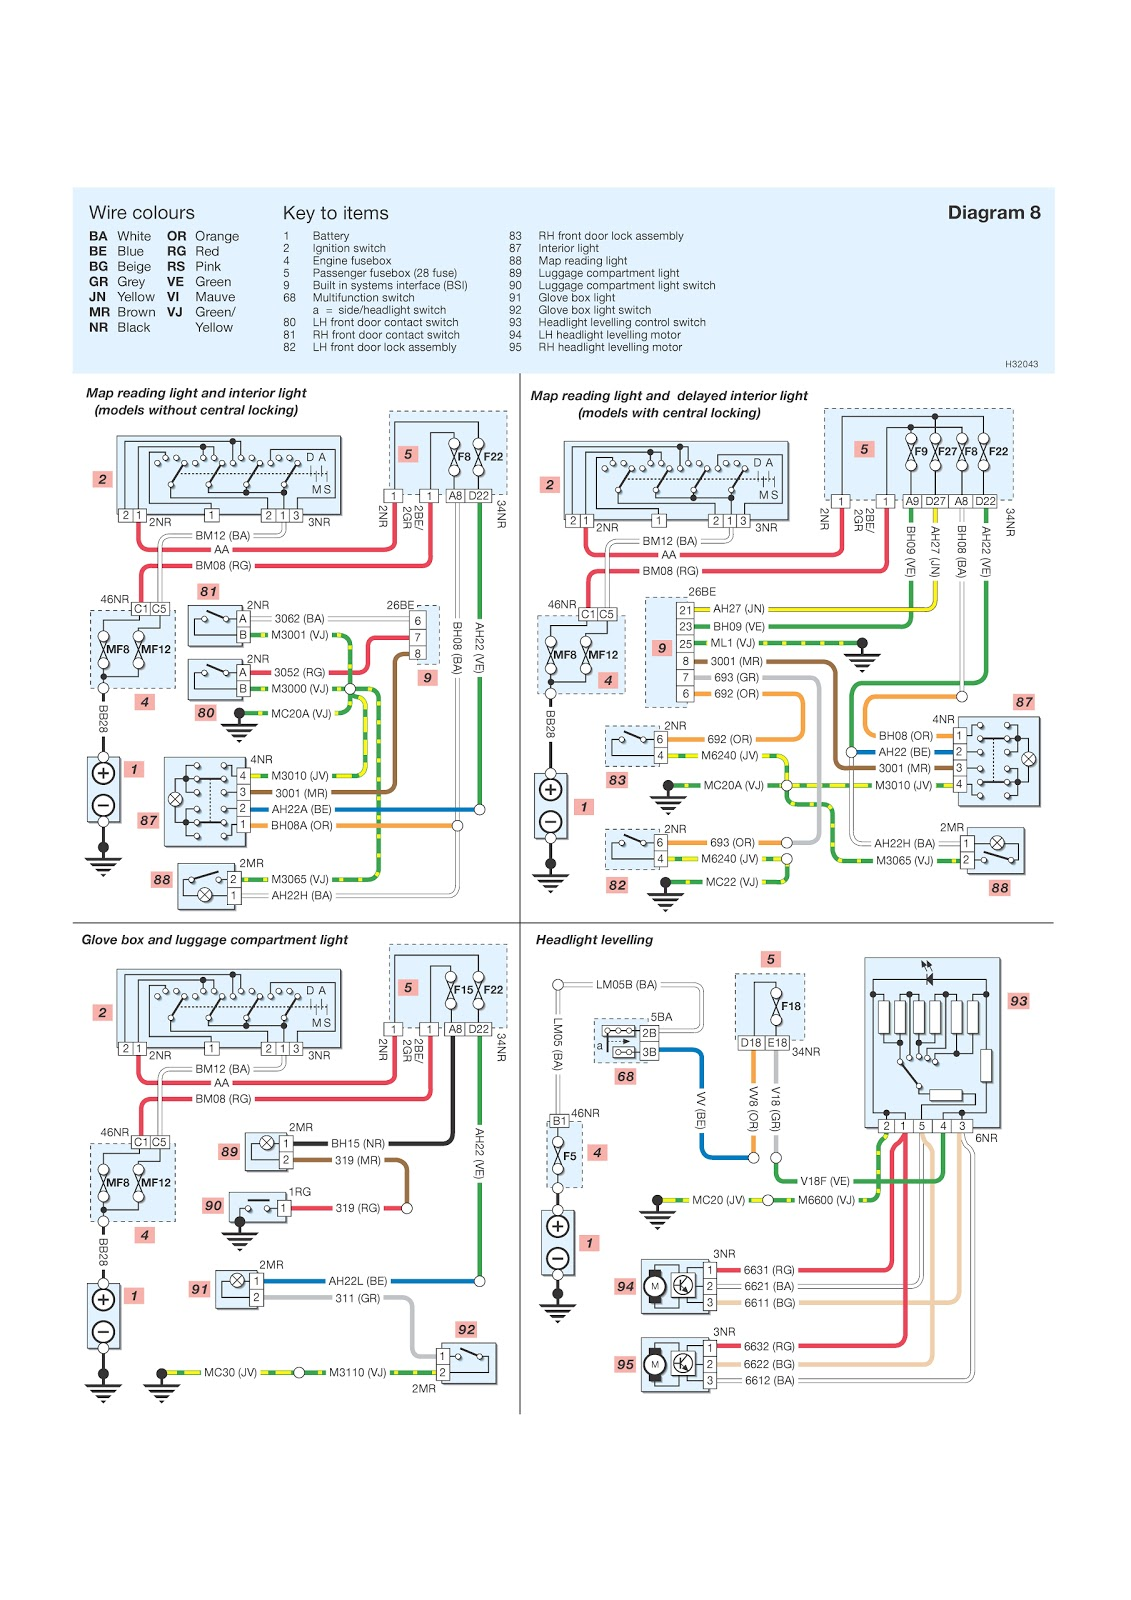 2011 schematic wiring diagrams solutions peugeot 206 wiring schematic interior lighting continued headlight leveling